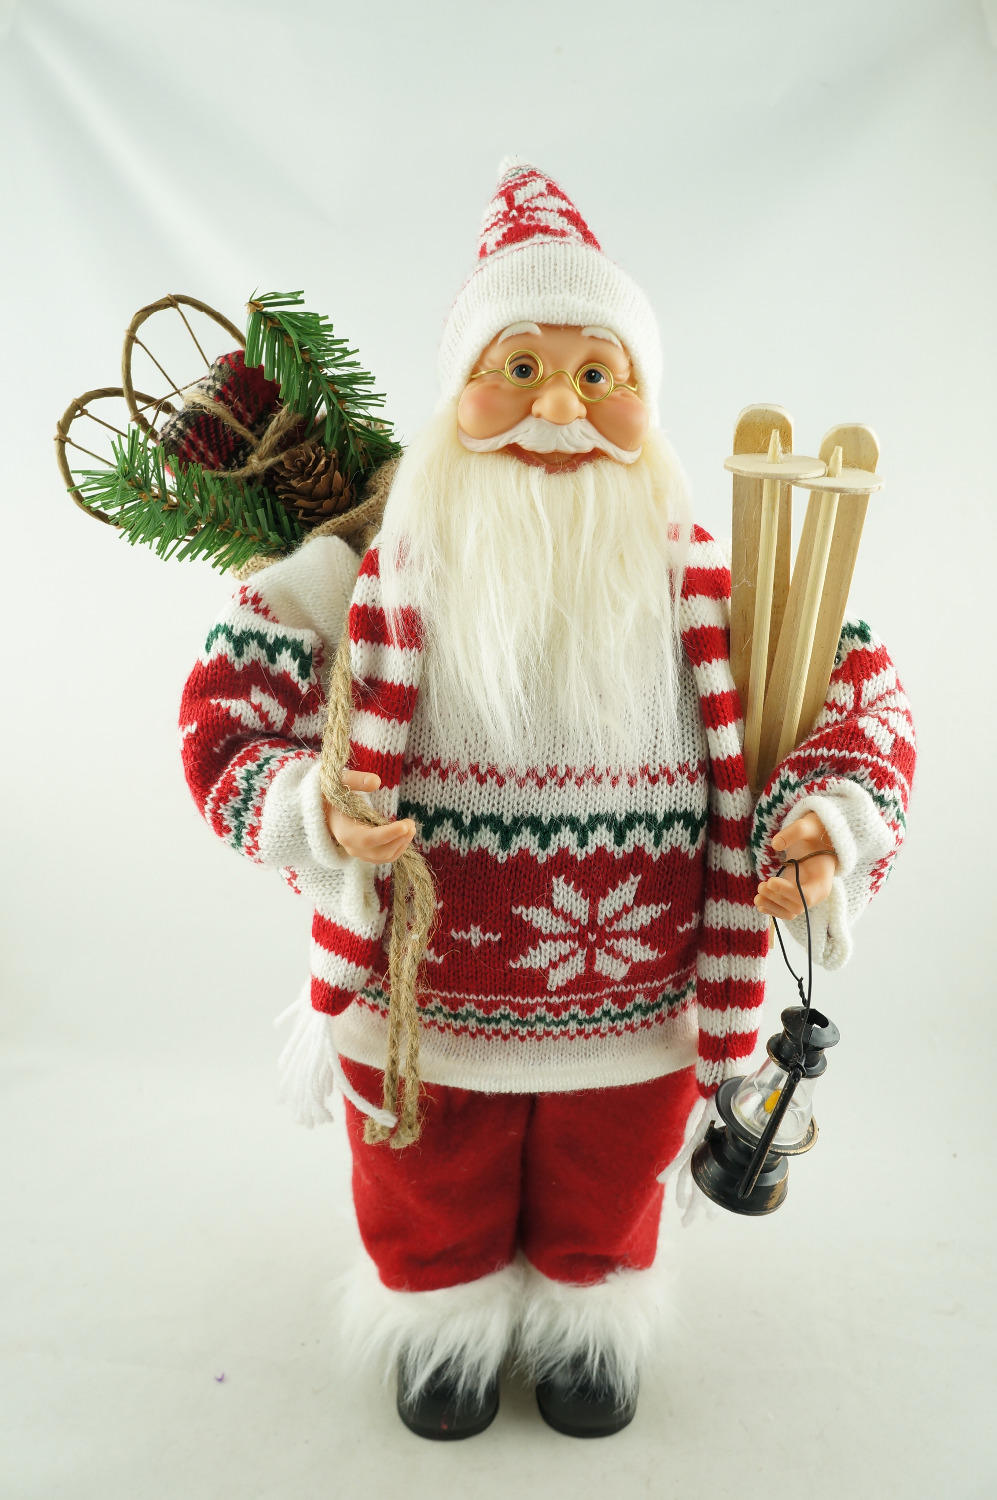 plush decorations decoration wayfair outdoor climbing chimney santa national cor christmas tree d pdx decor claus co